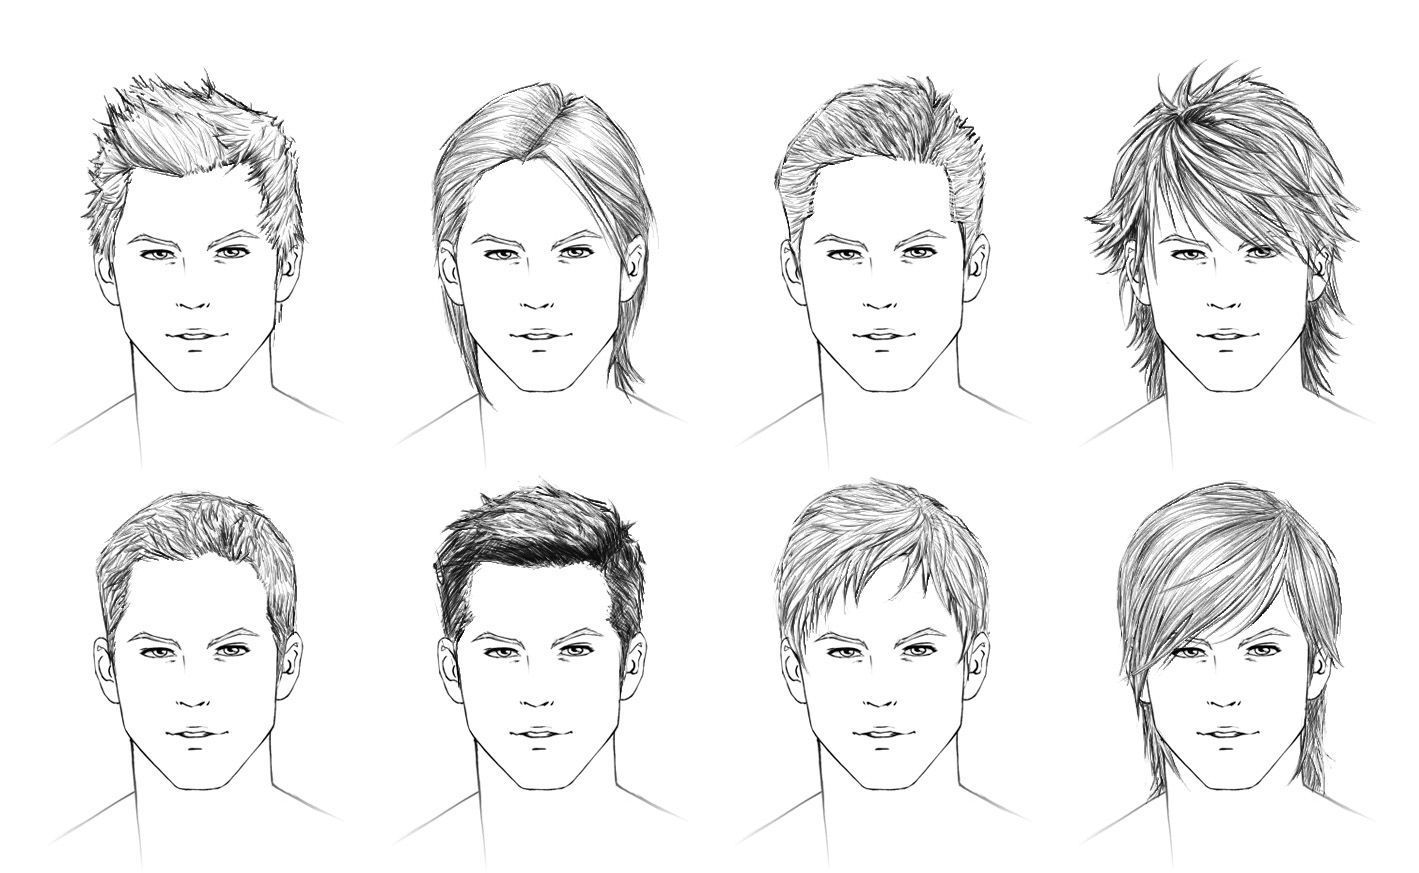 Zeichentechniken Hairstyles Drawing Male Drawing Hairstyles Human Face Drawings